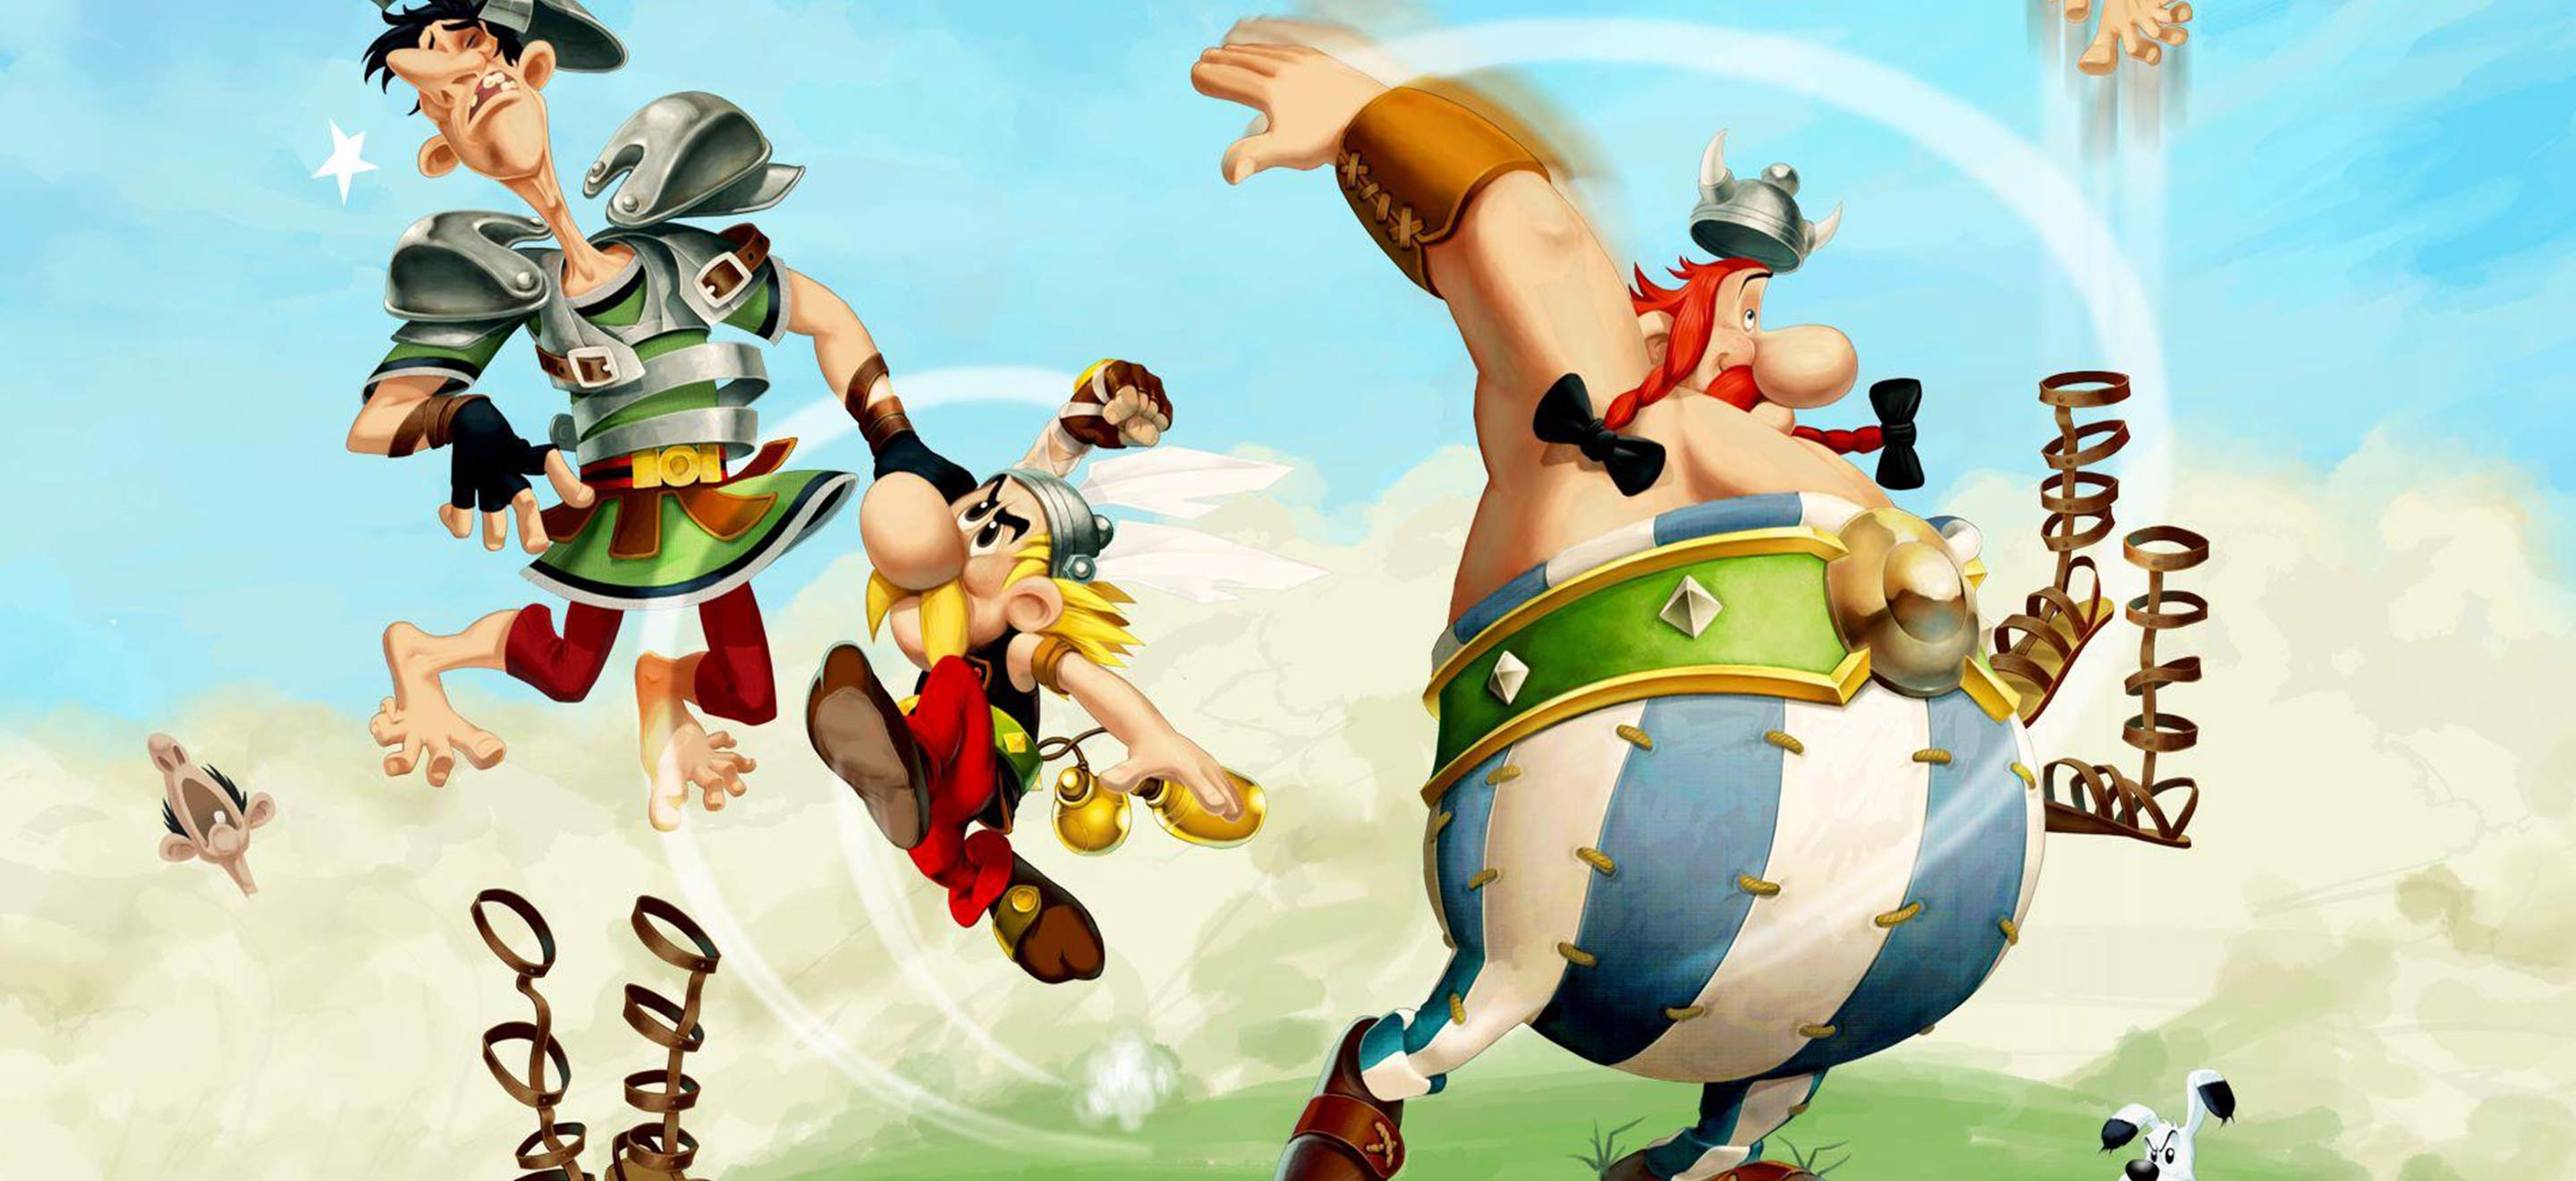 https://www.micromania.fr/on/demandware.static/-/Sites-Micromania-Library/default/dw12f87a63/fanzone/dossier/asterix/asterix-adaptations_Header.jpg